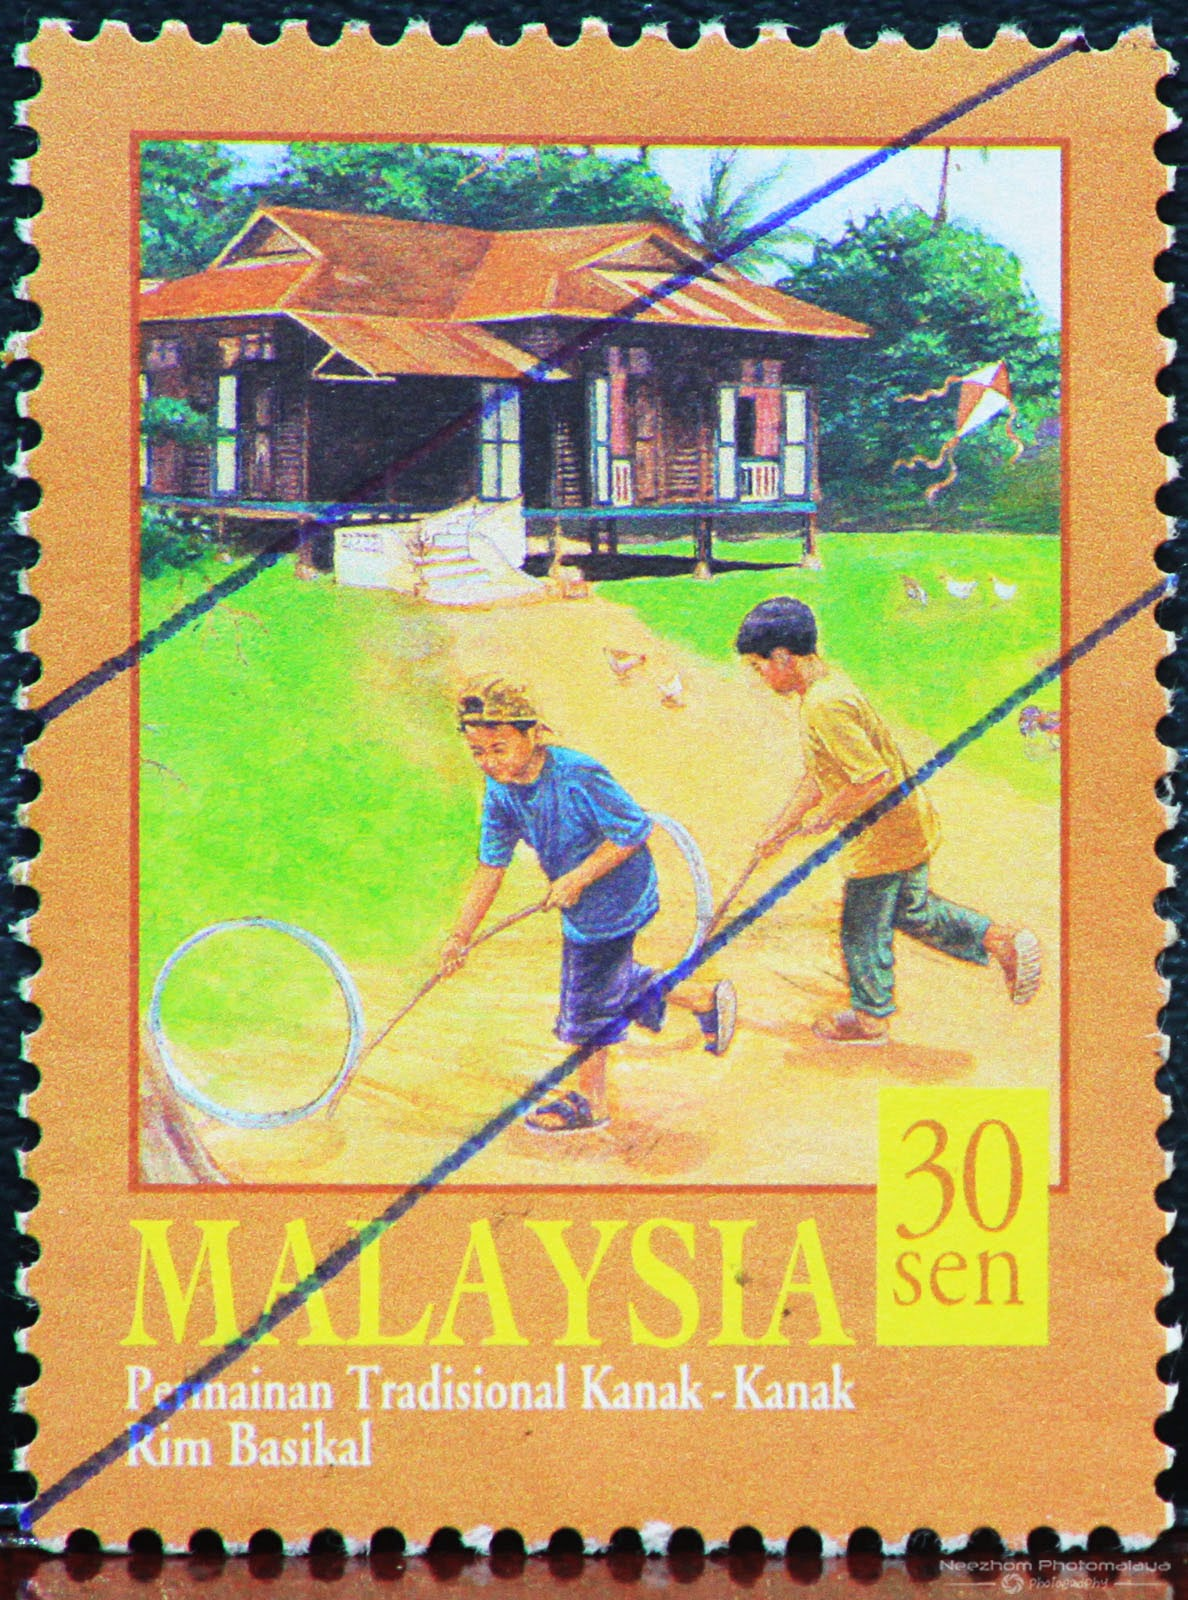 traditional games in malaysia Galah panjang is a game traditionally played on a court drawn on the vacant land tennis made containing two columns and several rows depending on the number of players.